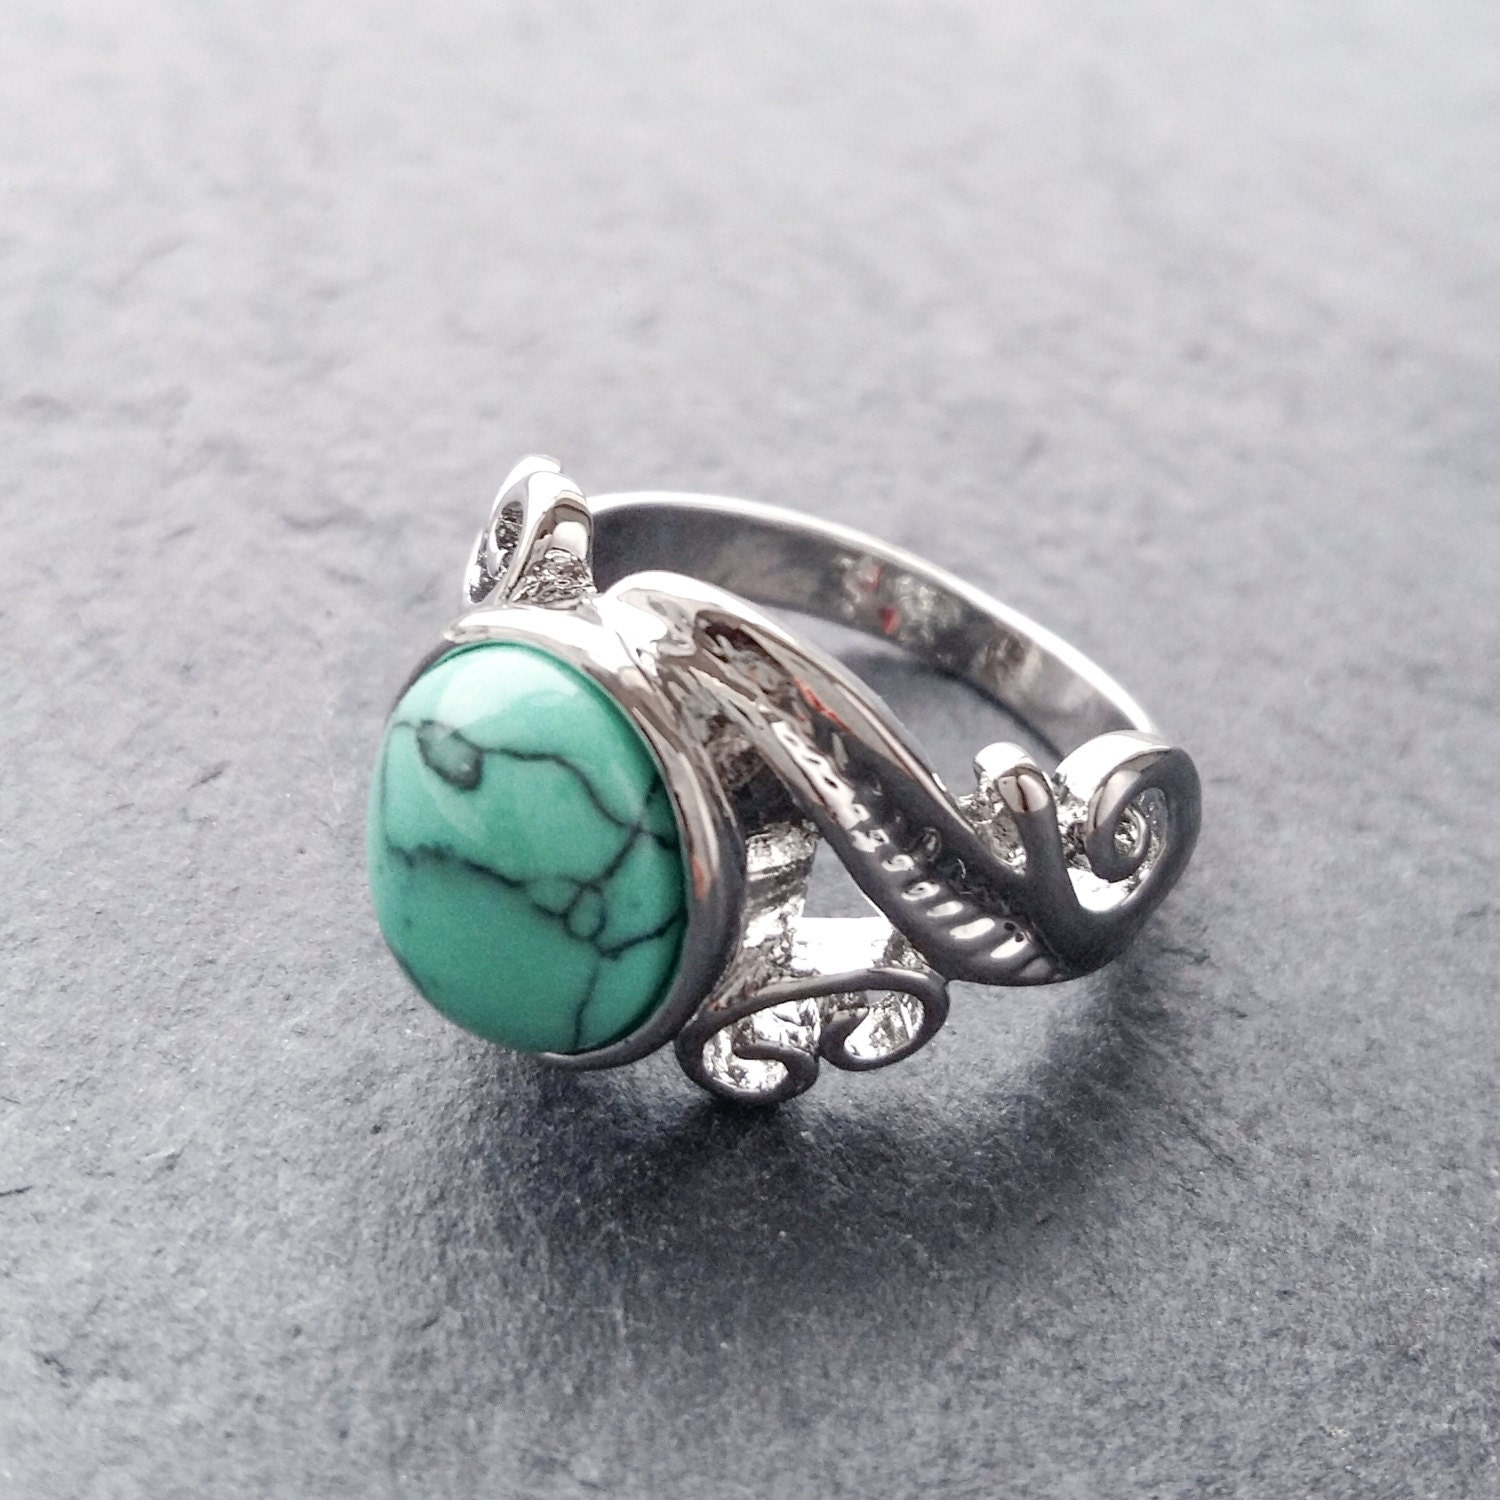 Bohemian Turquoise Stone Silver Ring  Boho Ornate Vintage Jewellery Aztec Armour Festival StyleThumb Rings Gemstone US Size 678